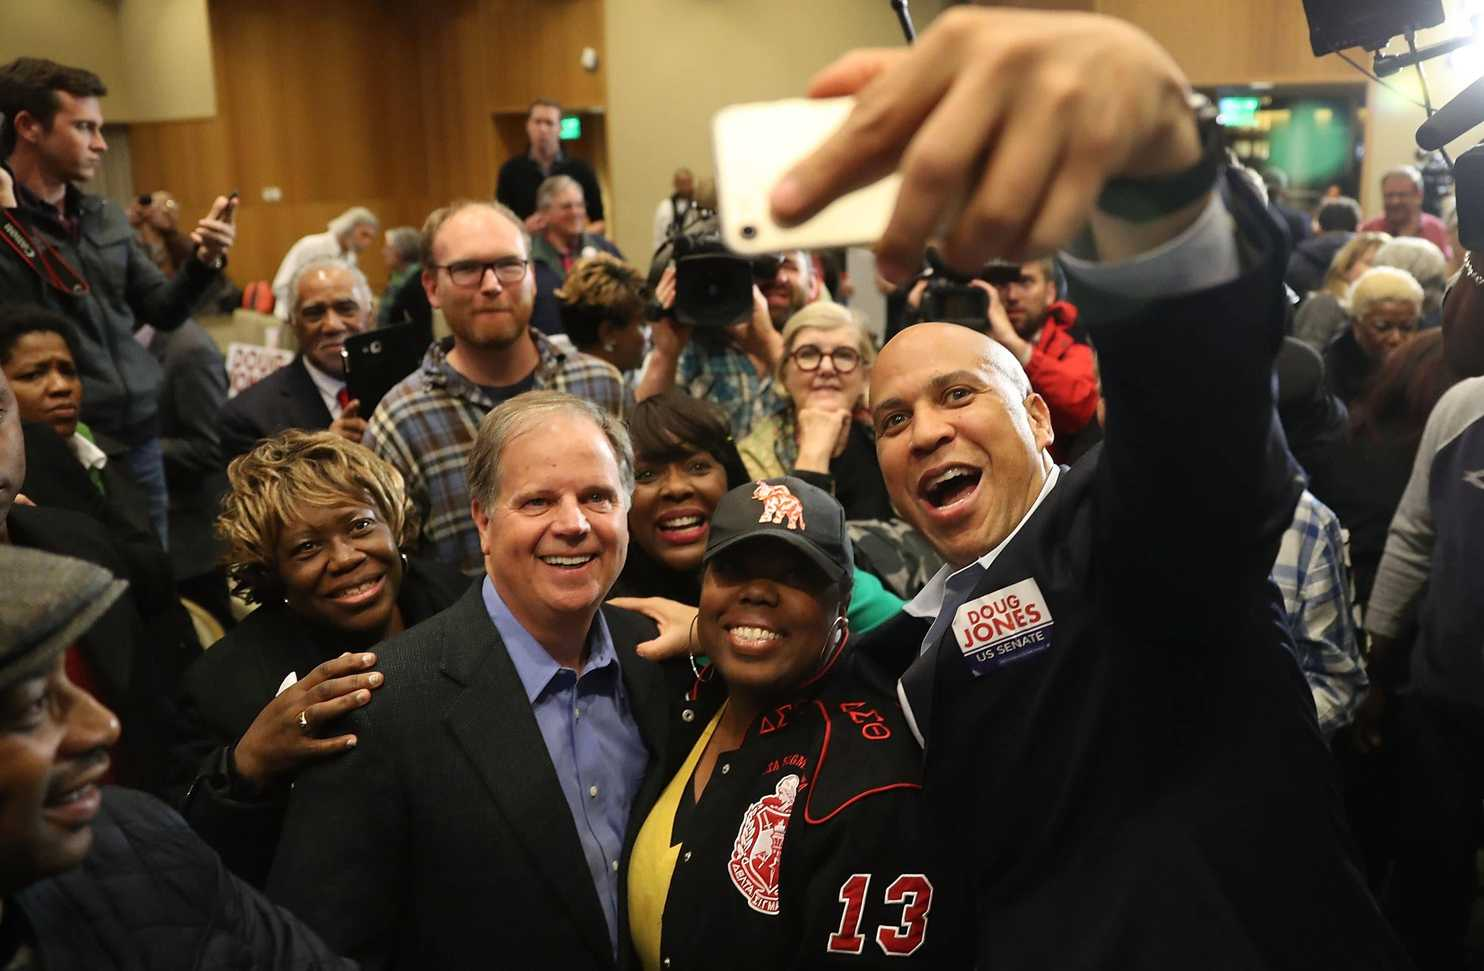 Soon to-be-elected US Sen. Doug Jones (D-Alabama) with women voters who made the upset possible last night, and Sen. Cory Booker (D-New Jersey) campaigning in Alabama—where Roy Moore was soundly defeated despite Steve Bannon and Donald Trump campaigning for the accused girl-stalker.